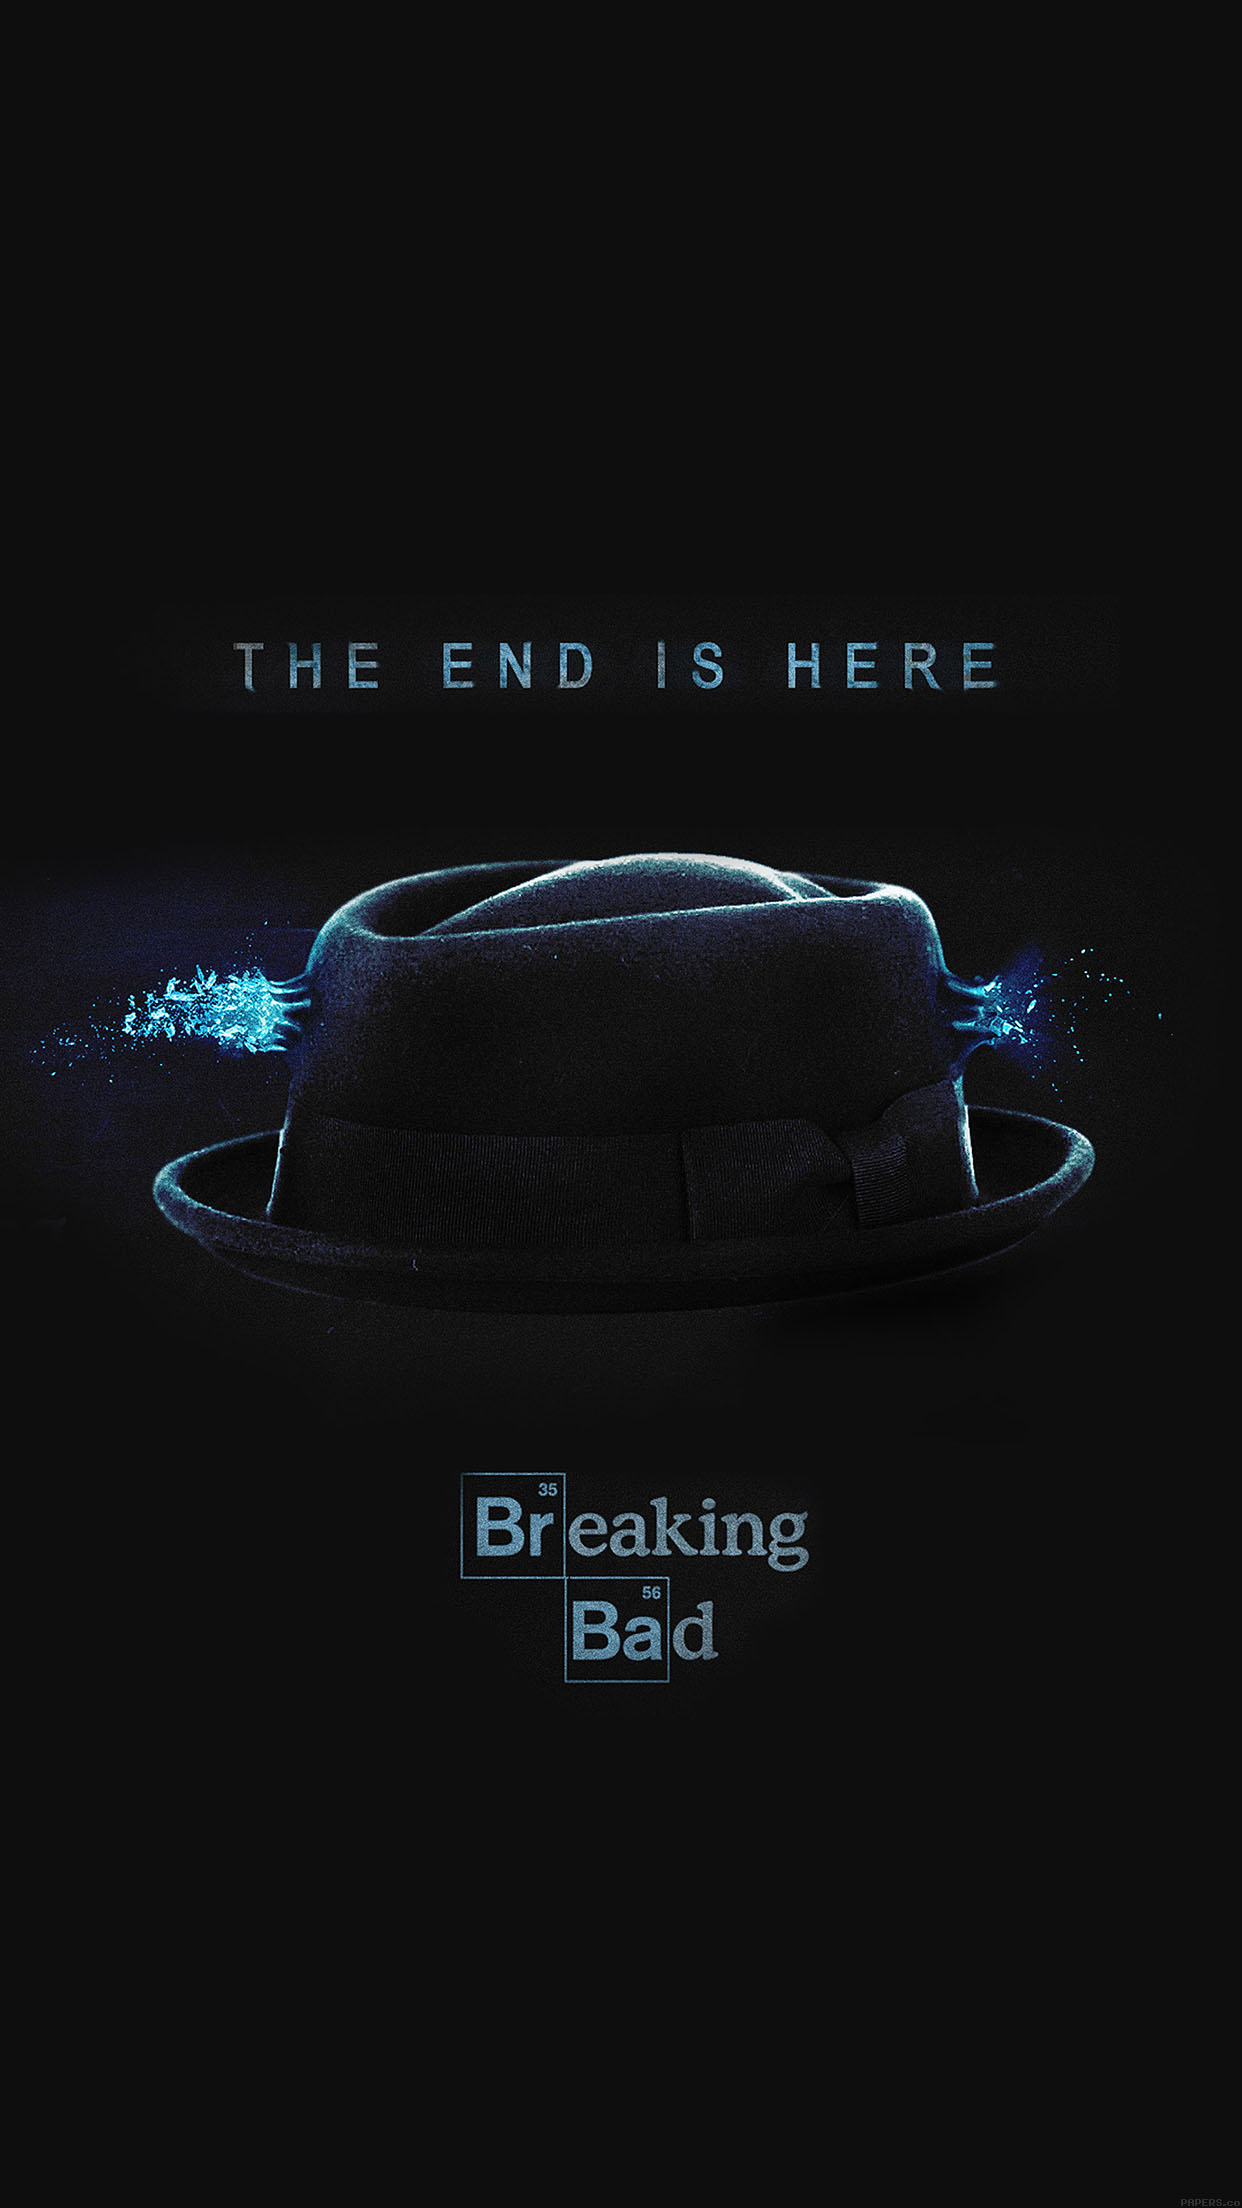 Fall Mac Wallpaper Papers Co Iphone Wallpaper Aa15 Breaking Bad End Film Art